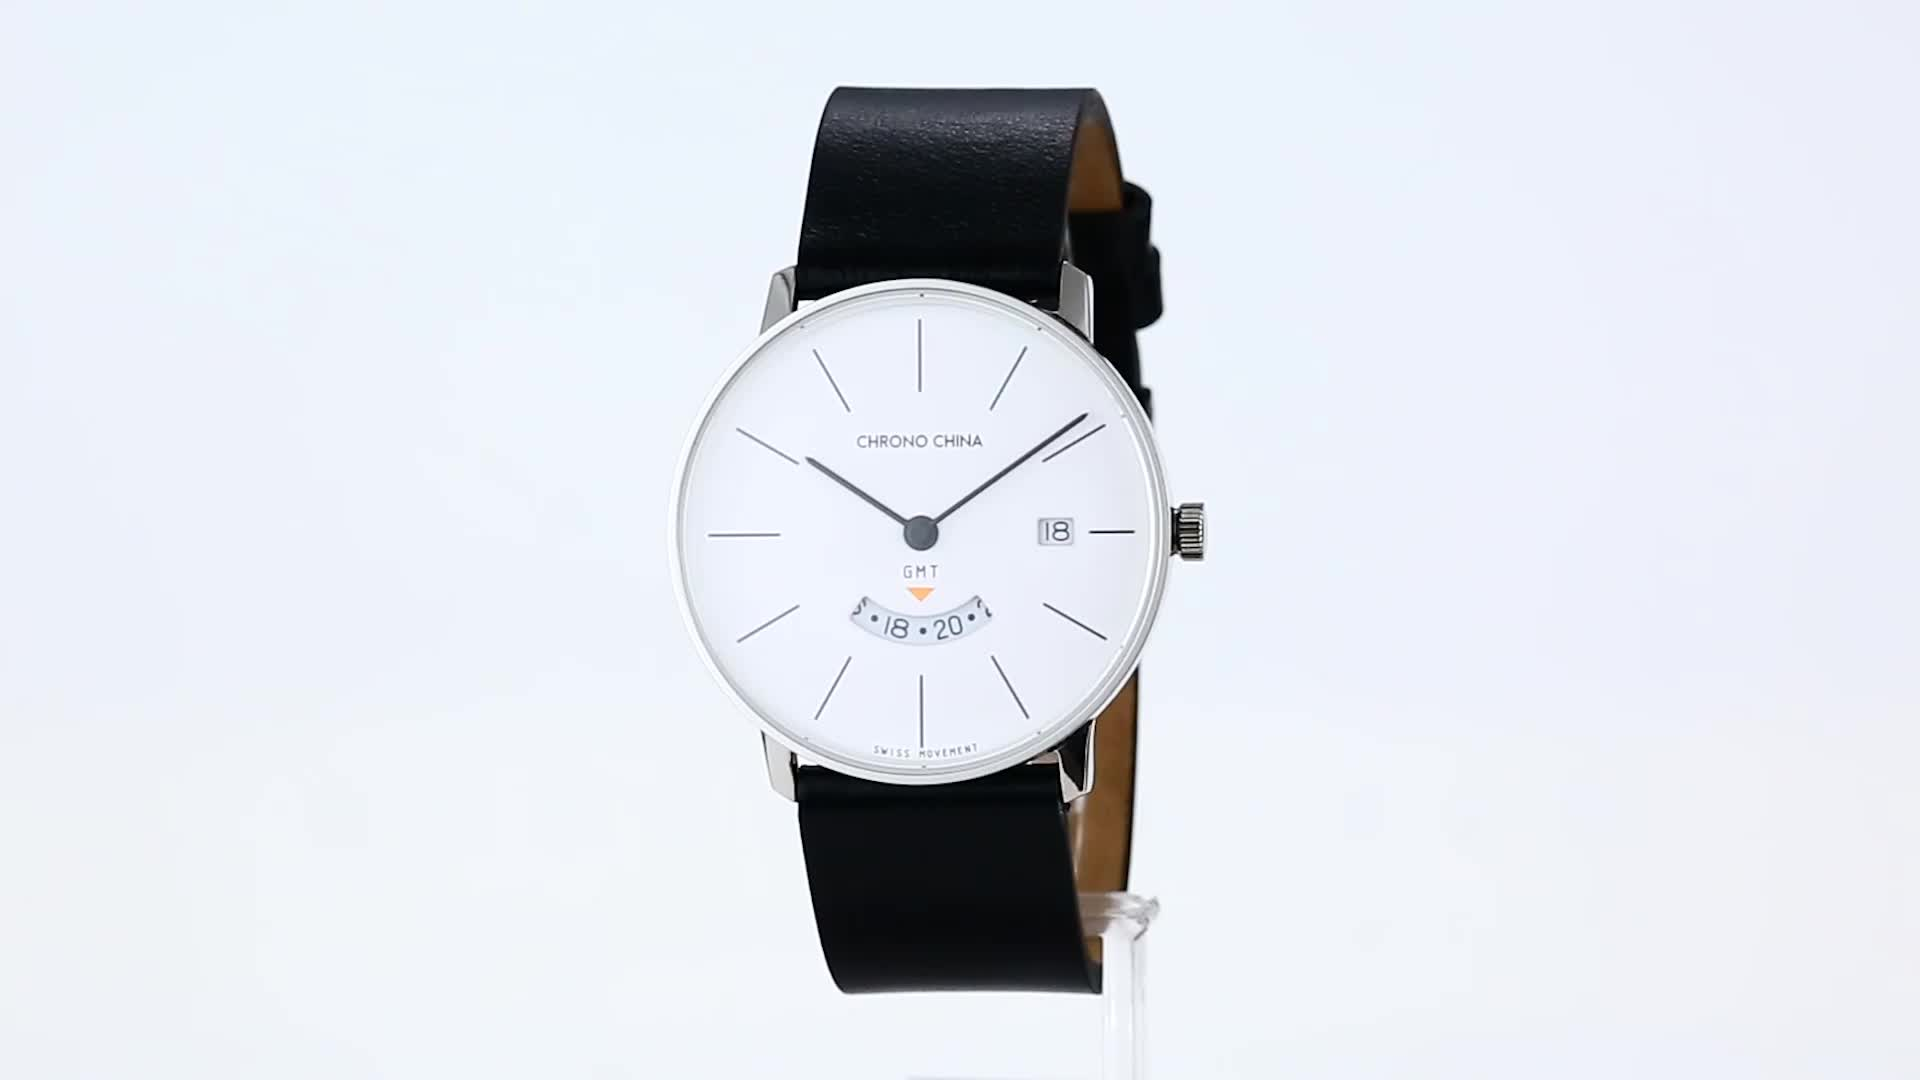 detail man many lefht of redefining minimal fashion watches lehft is